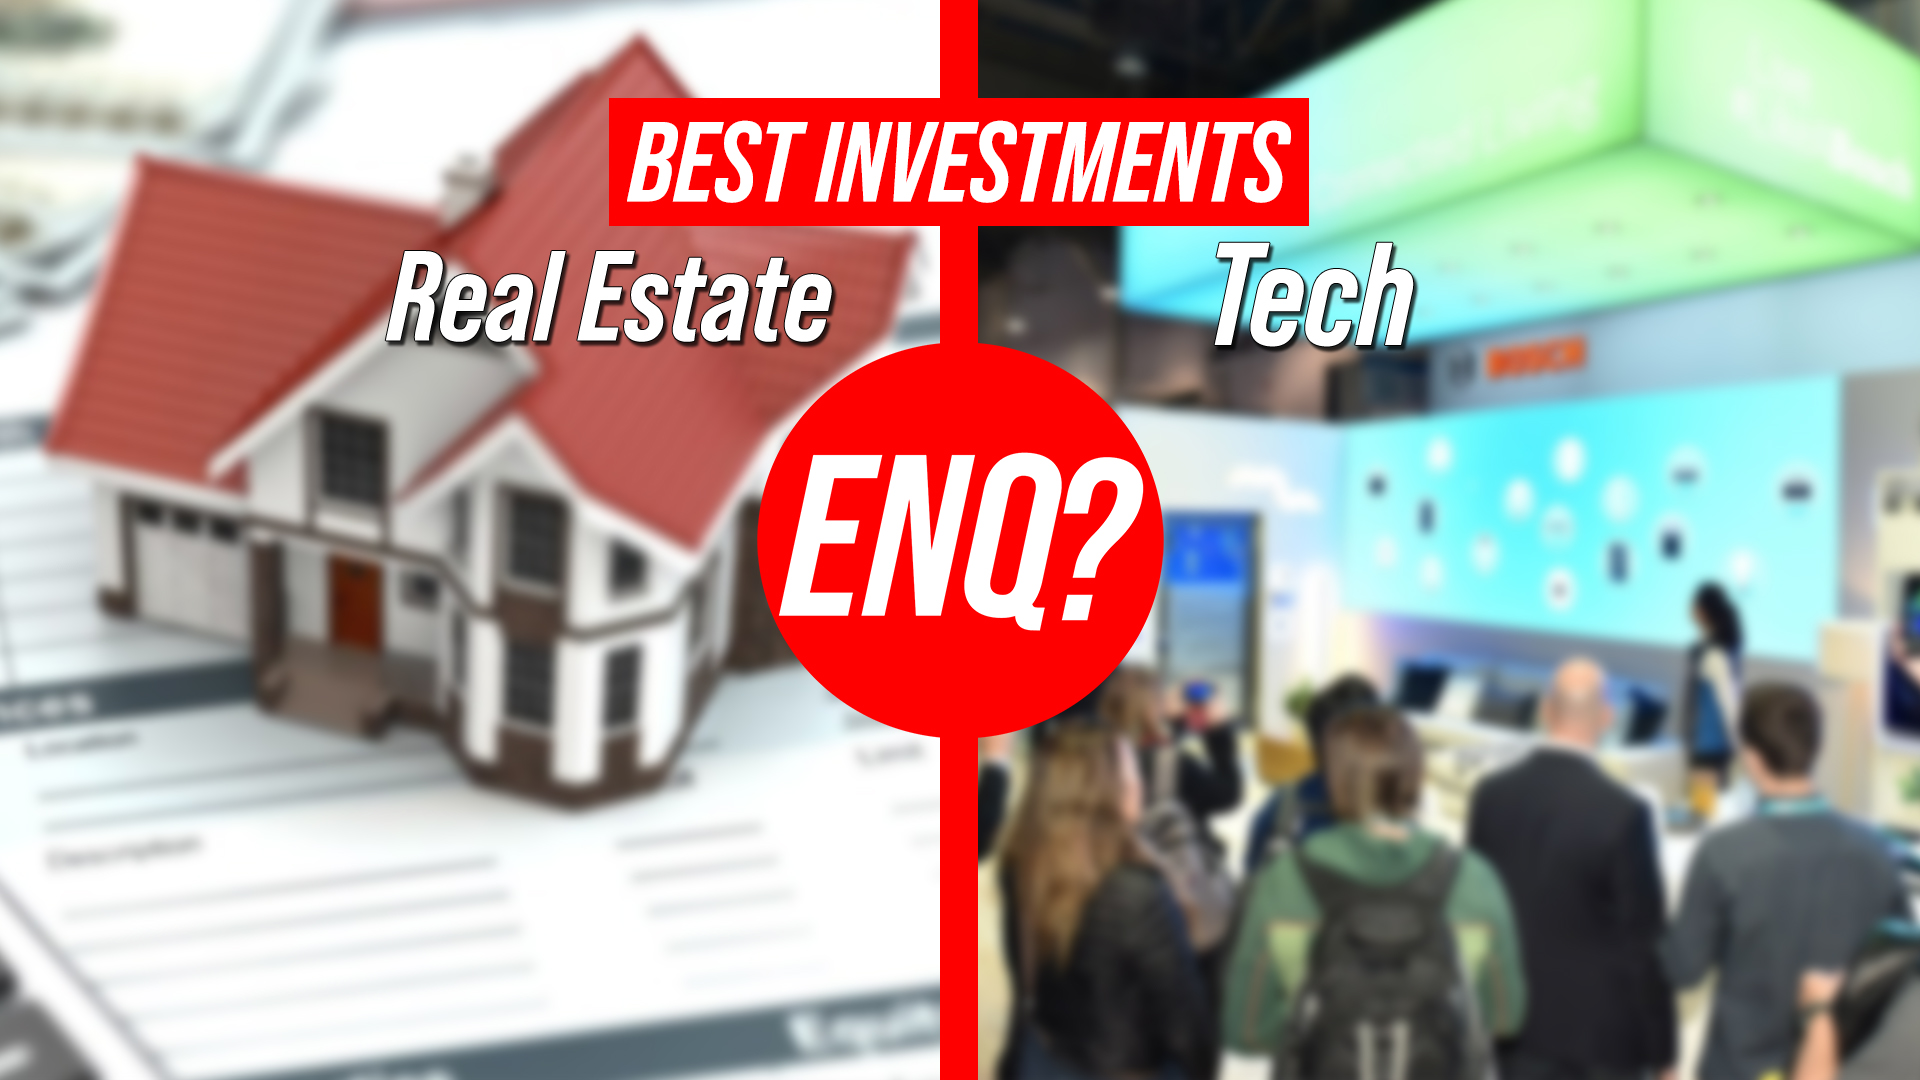 National ENQ Analysts: Real Estate – Land & Digital Businesses Are the Best Investment Today!